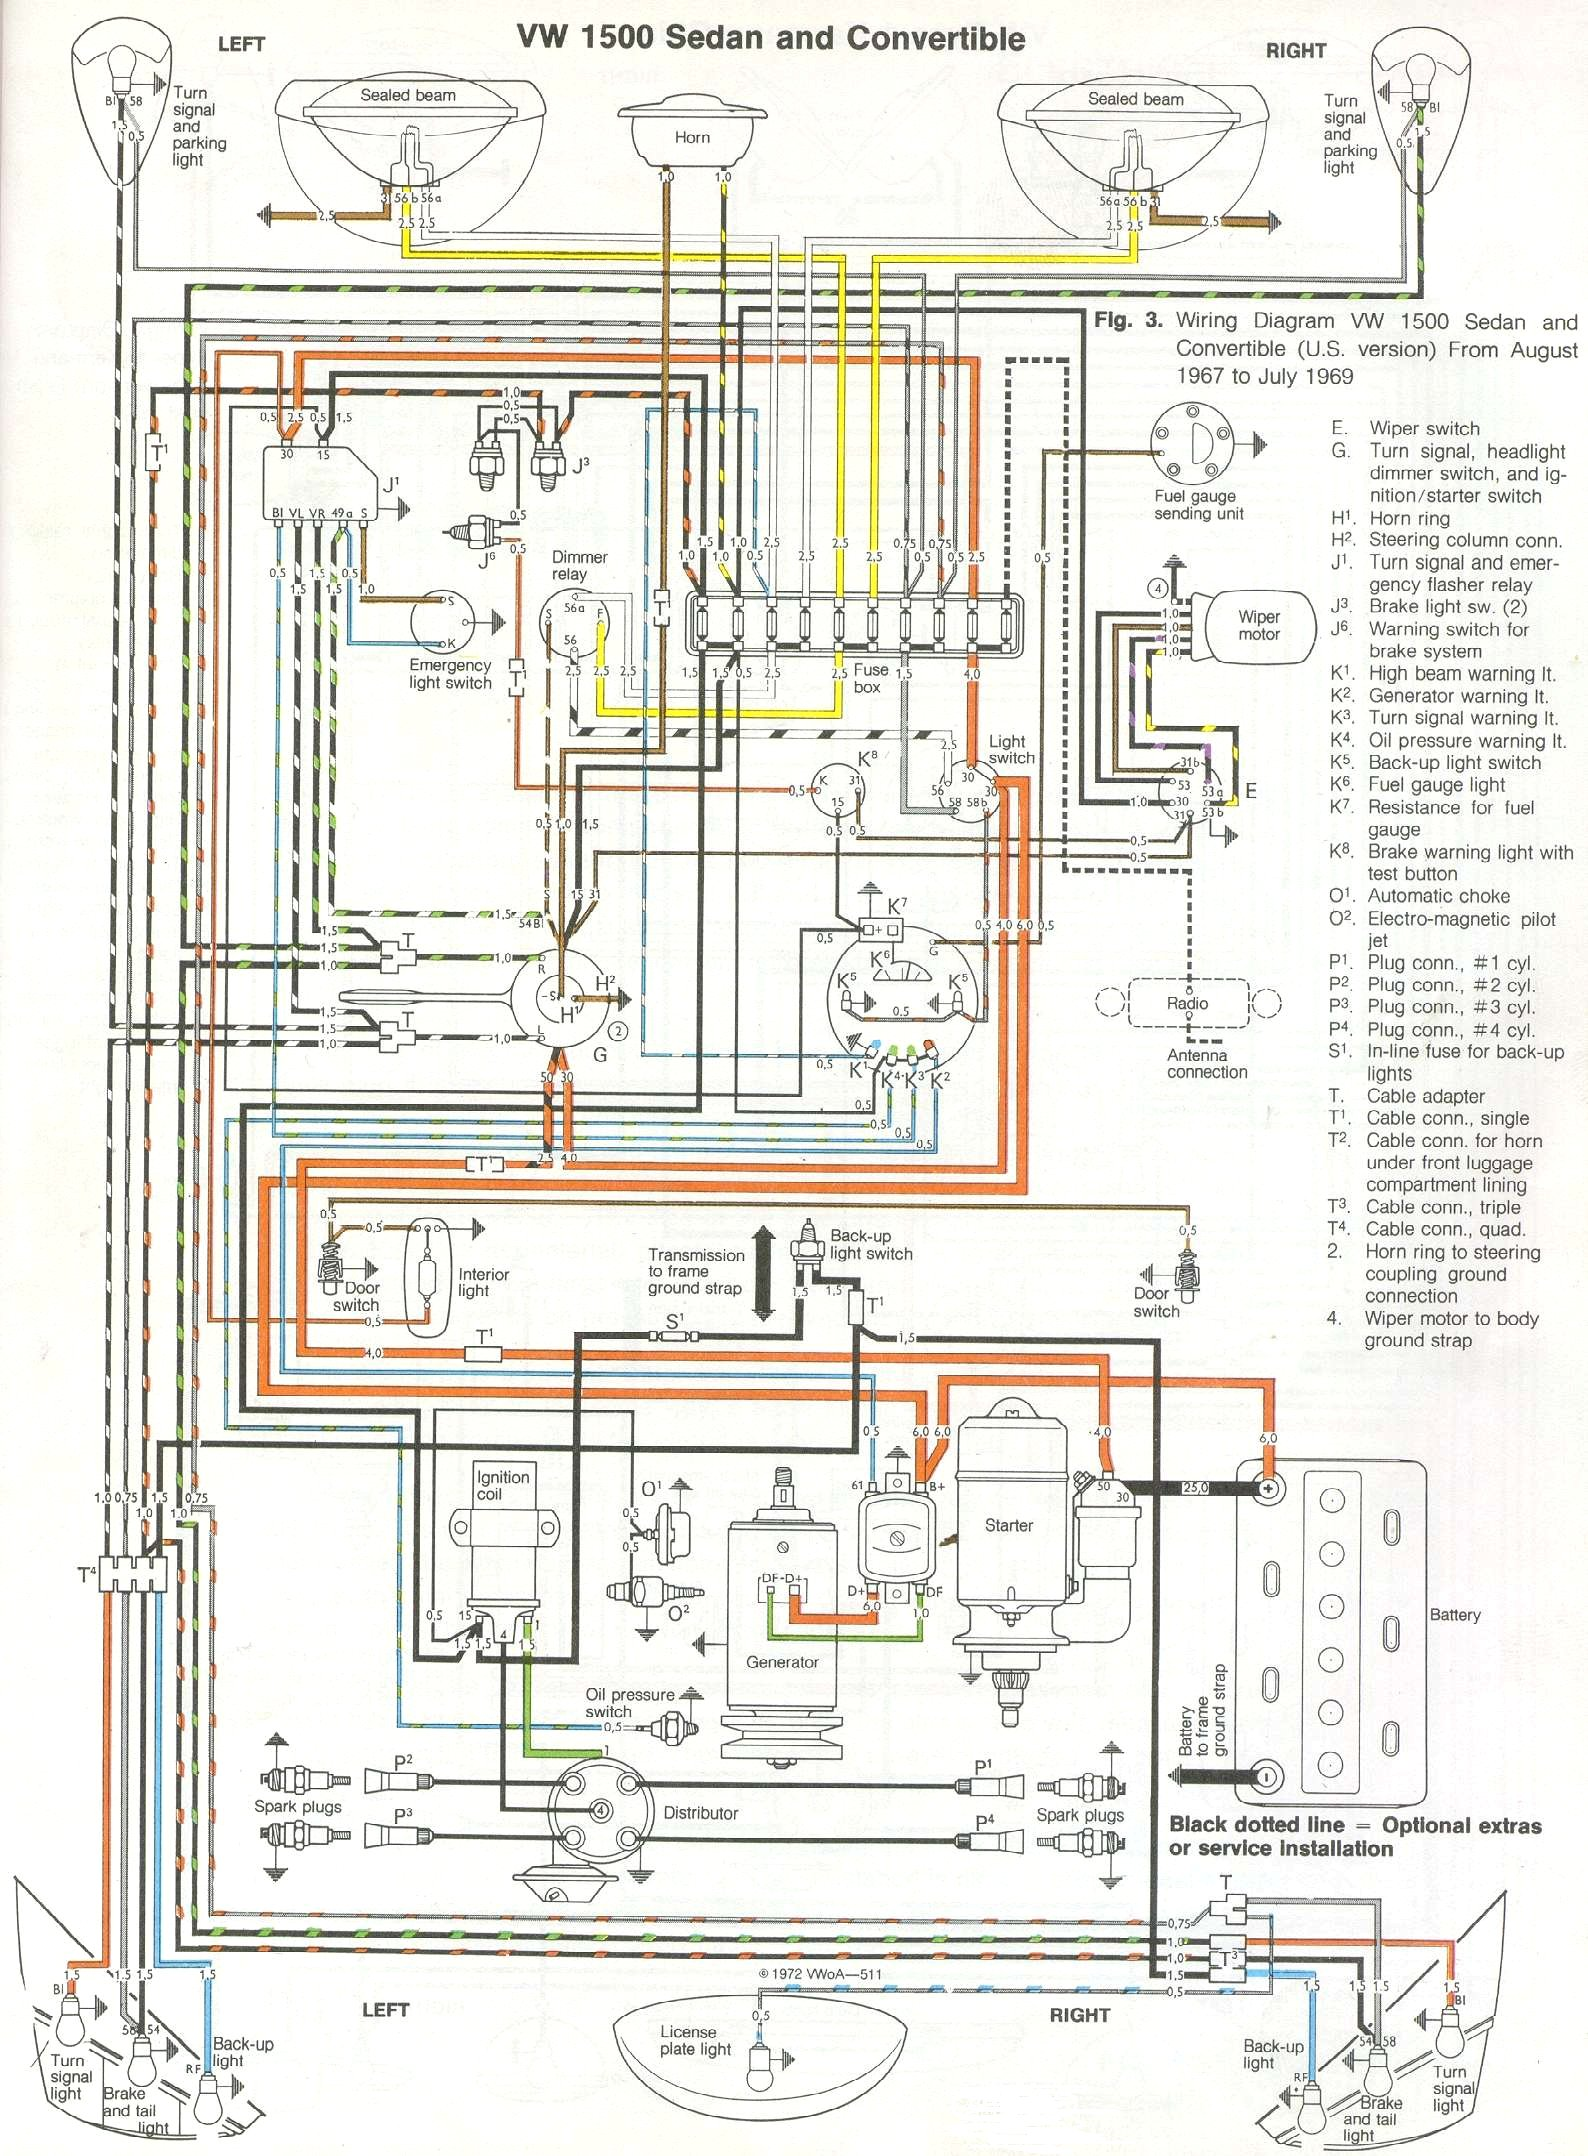 1968 69 beetle wiring diagram (usa) thegoldenbug com 1960 VW Beetle Wiring Diagram 1968 69 beetle wiring diagram (usa)